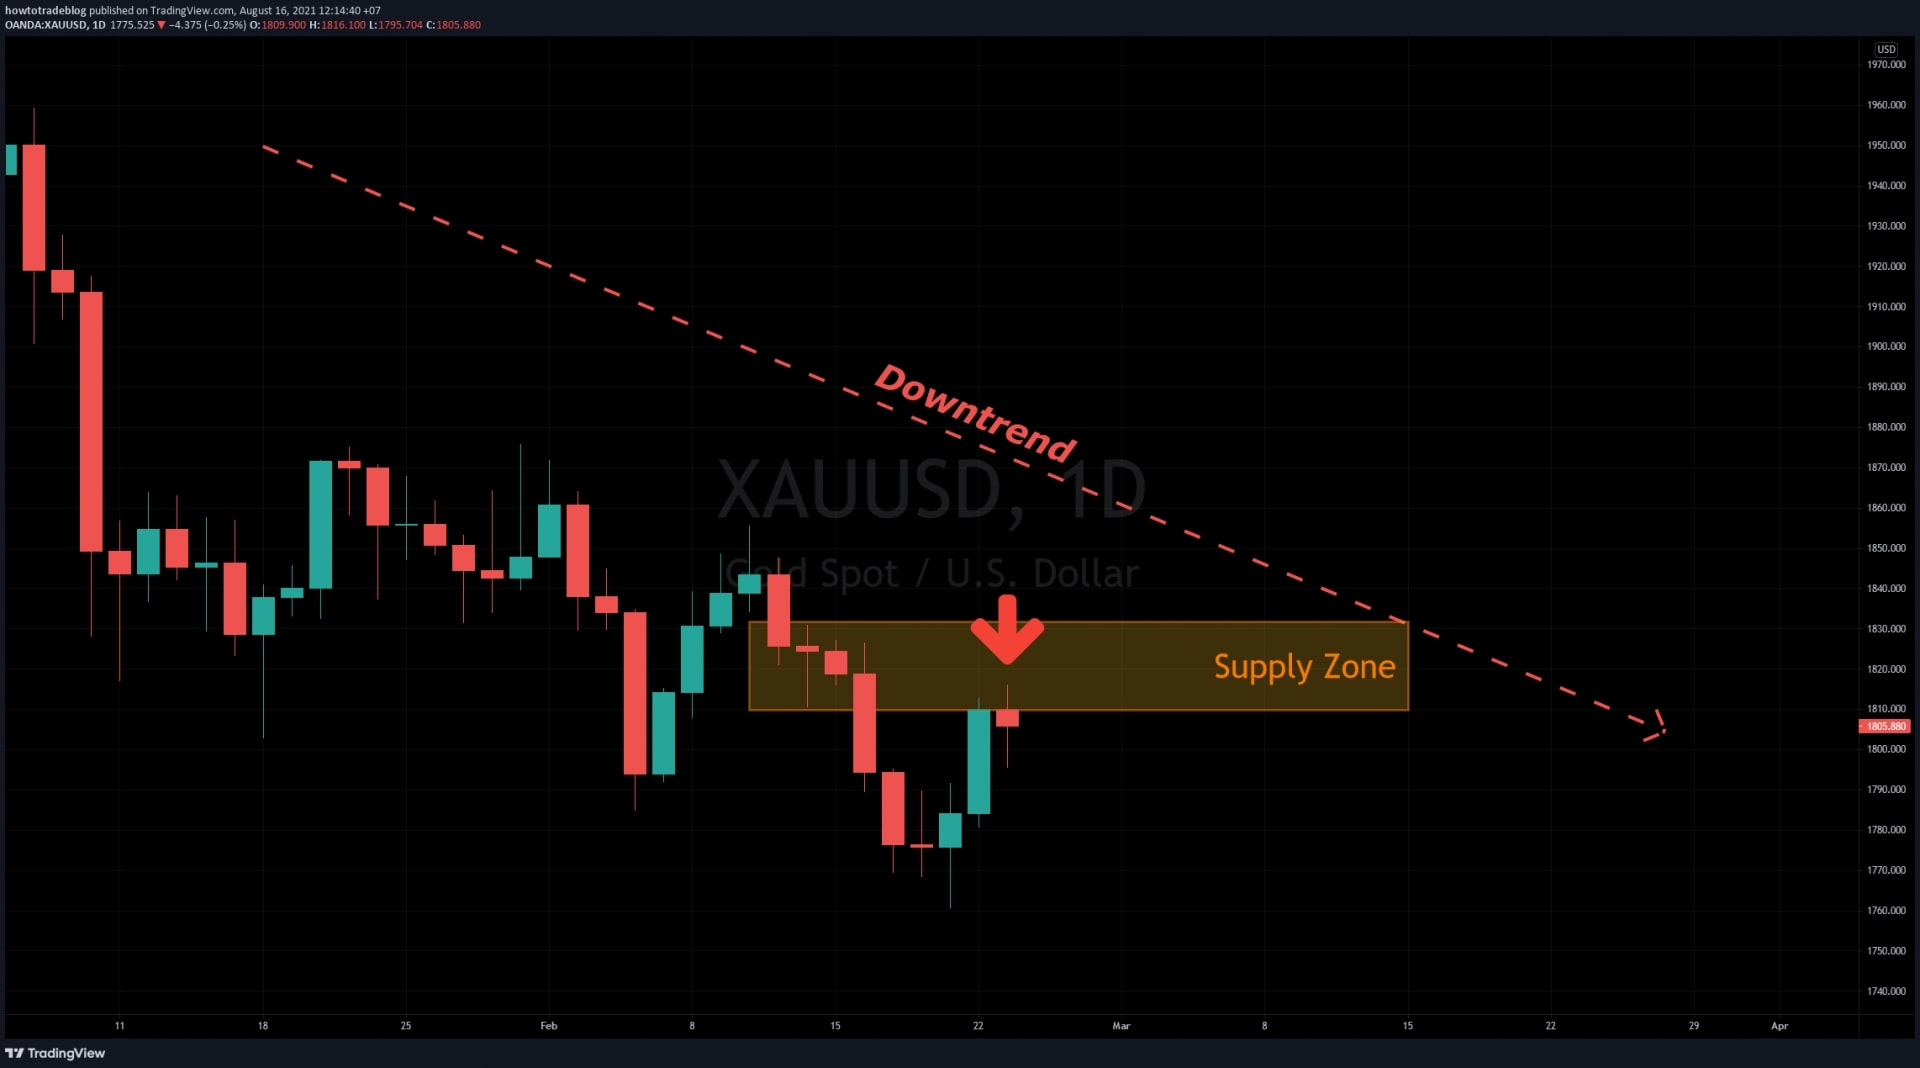 The gold price created a Supply zone in the downtrend